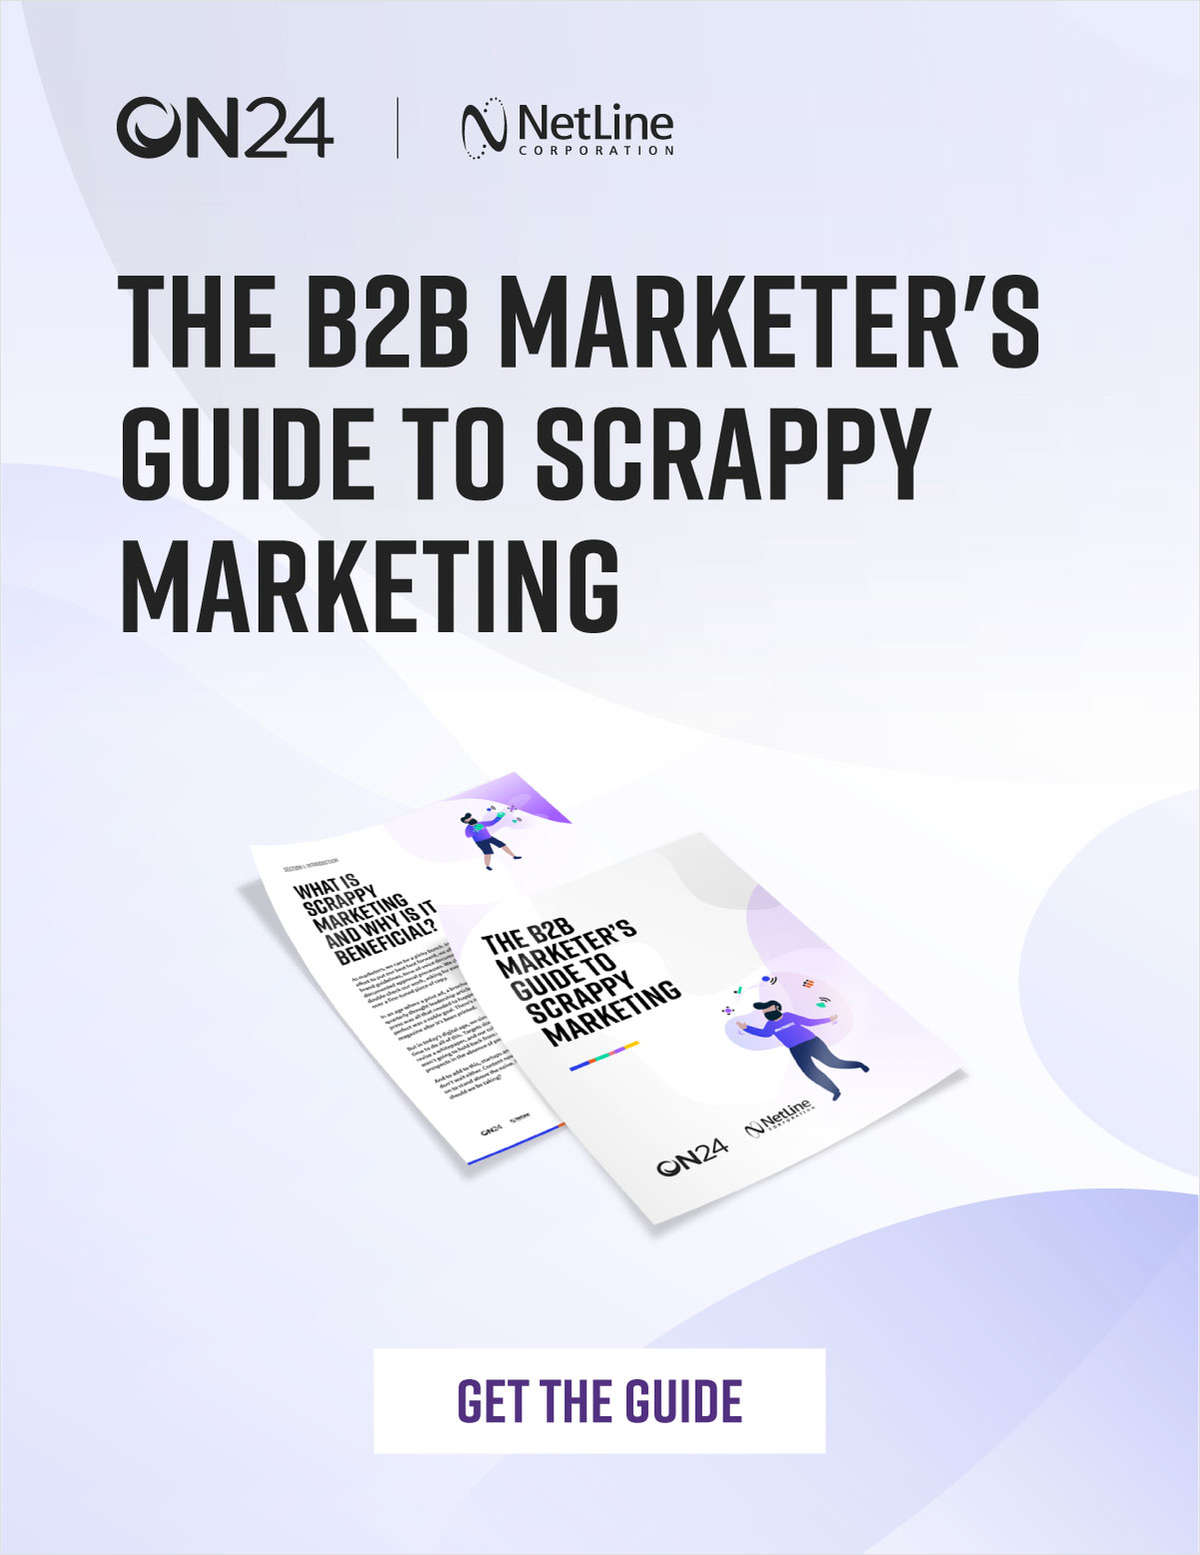 The B2B Marketer's Guide to Scrappy Marketing